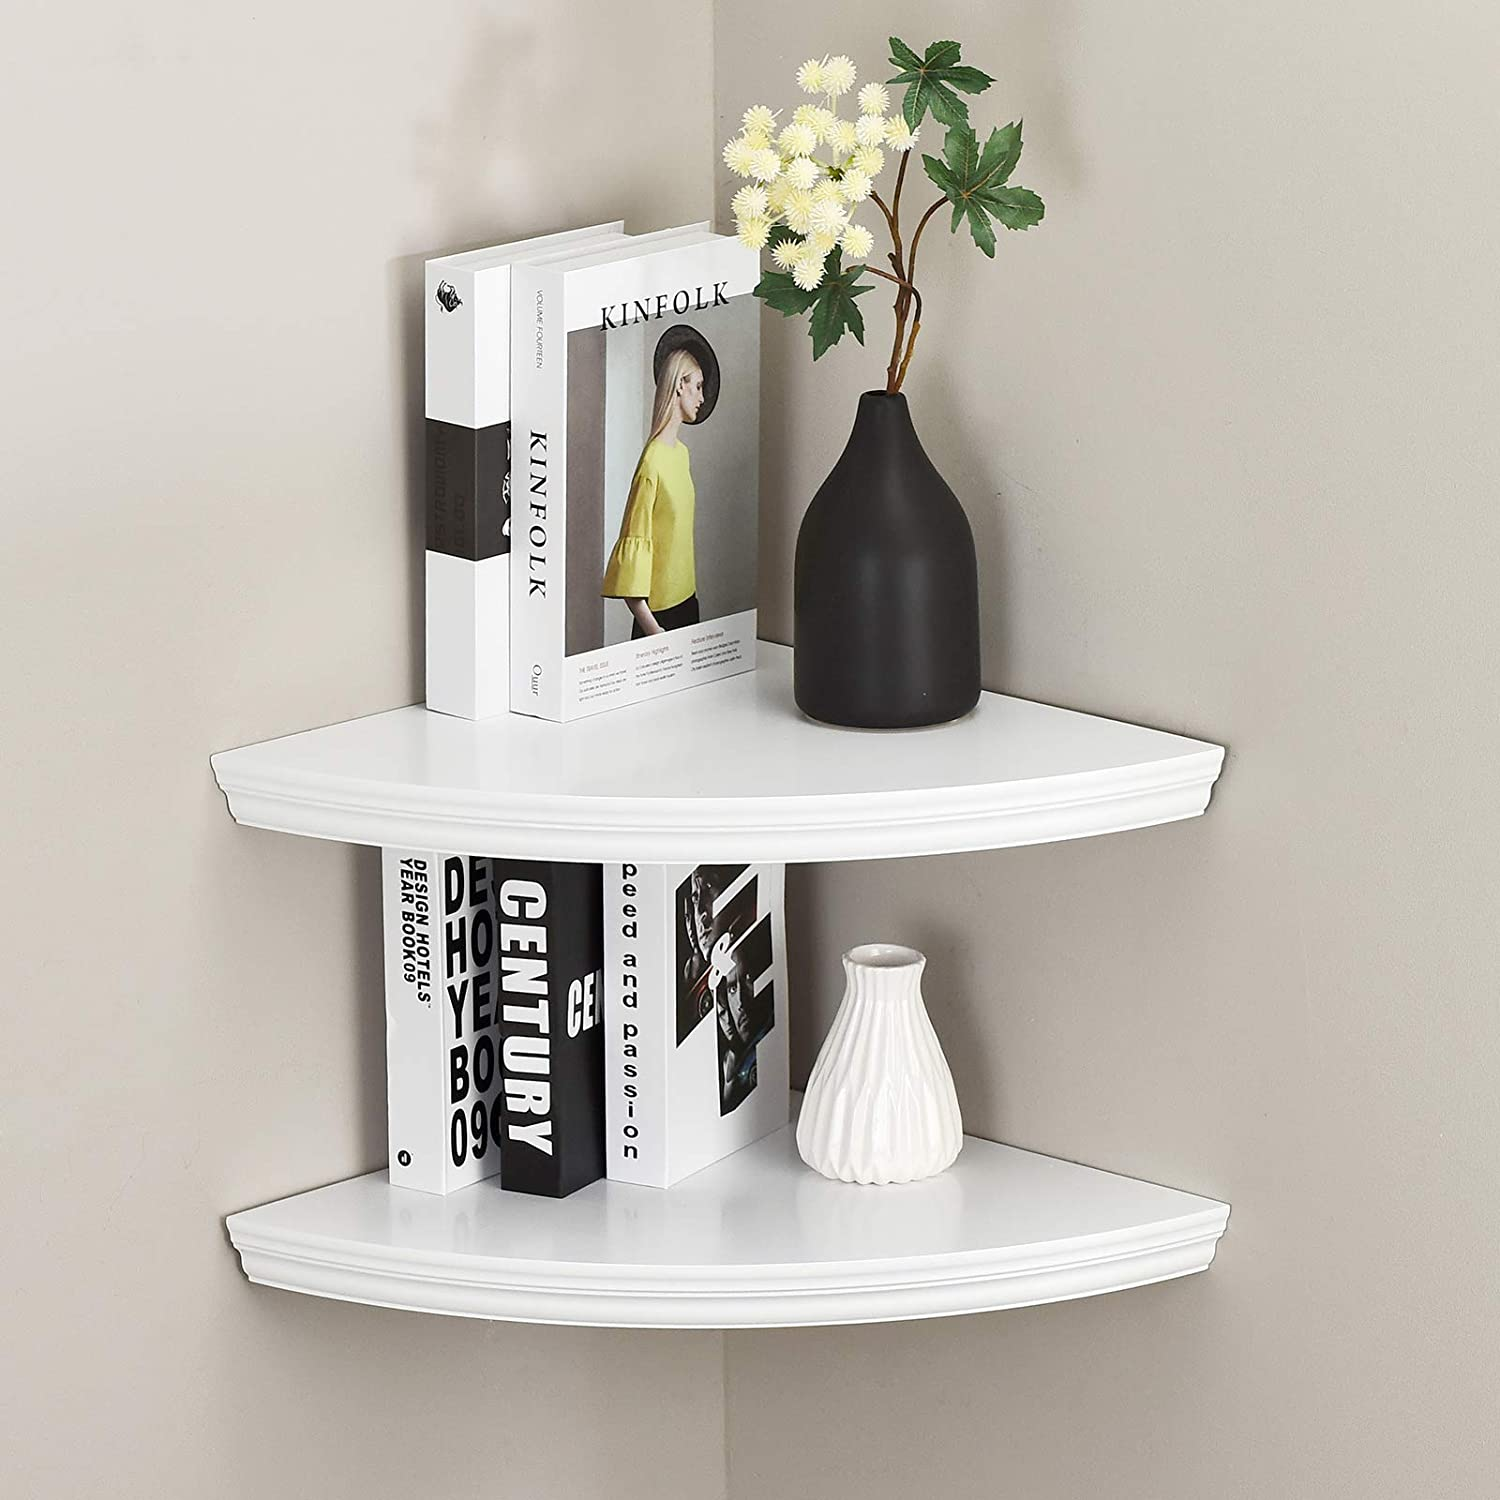 WELLAND Modern Wall Corner Shelves, Corner Display Floating Shelf for Bedroom Office Home Décor Accents Set of 2 (16.5